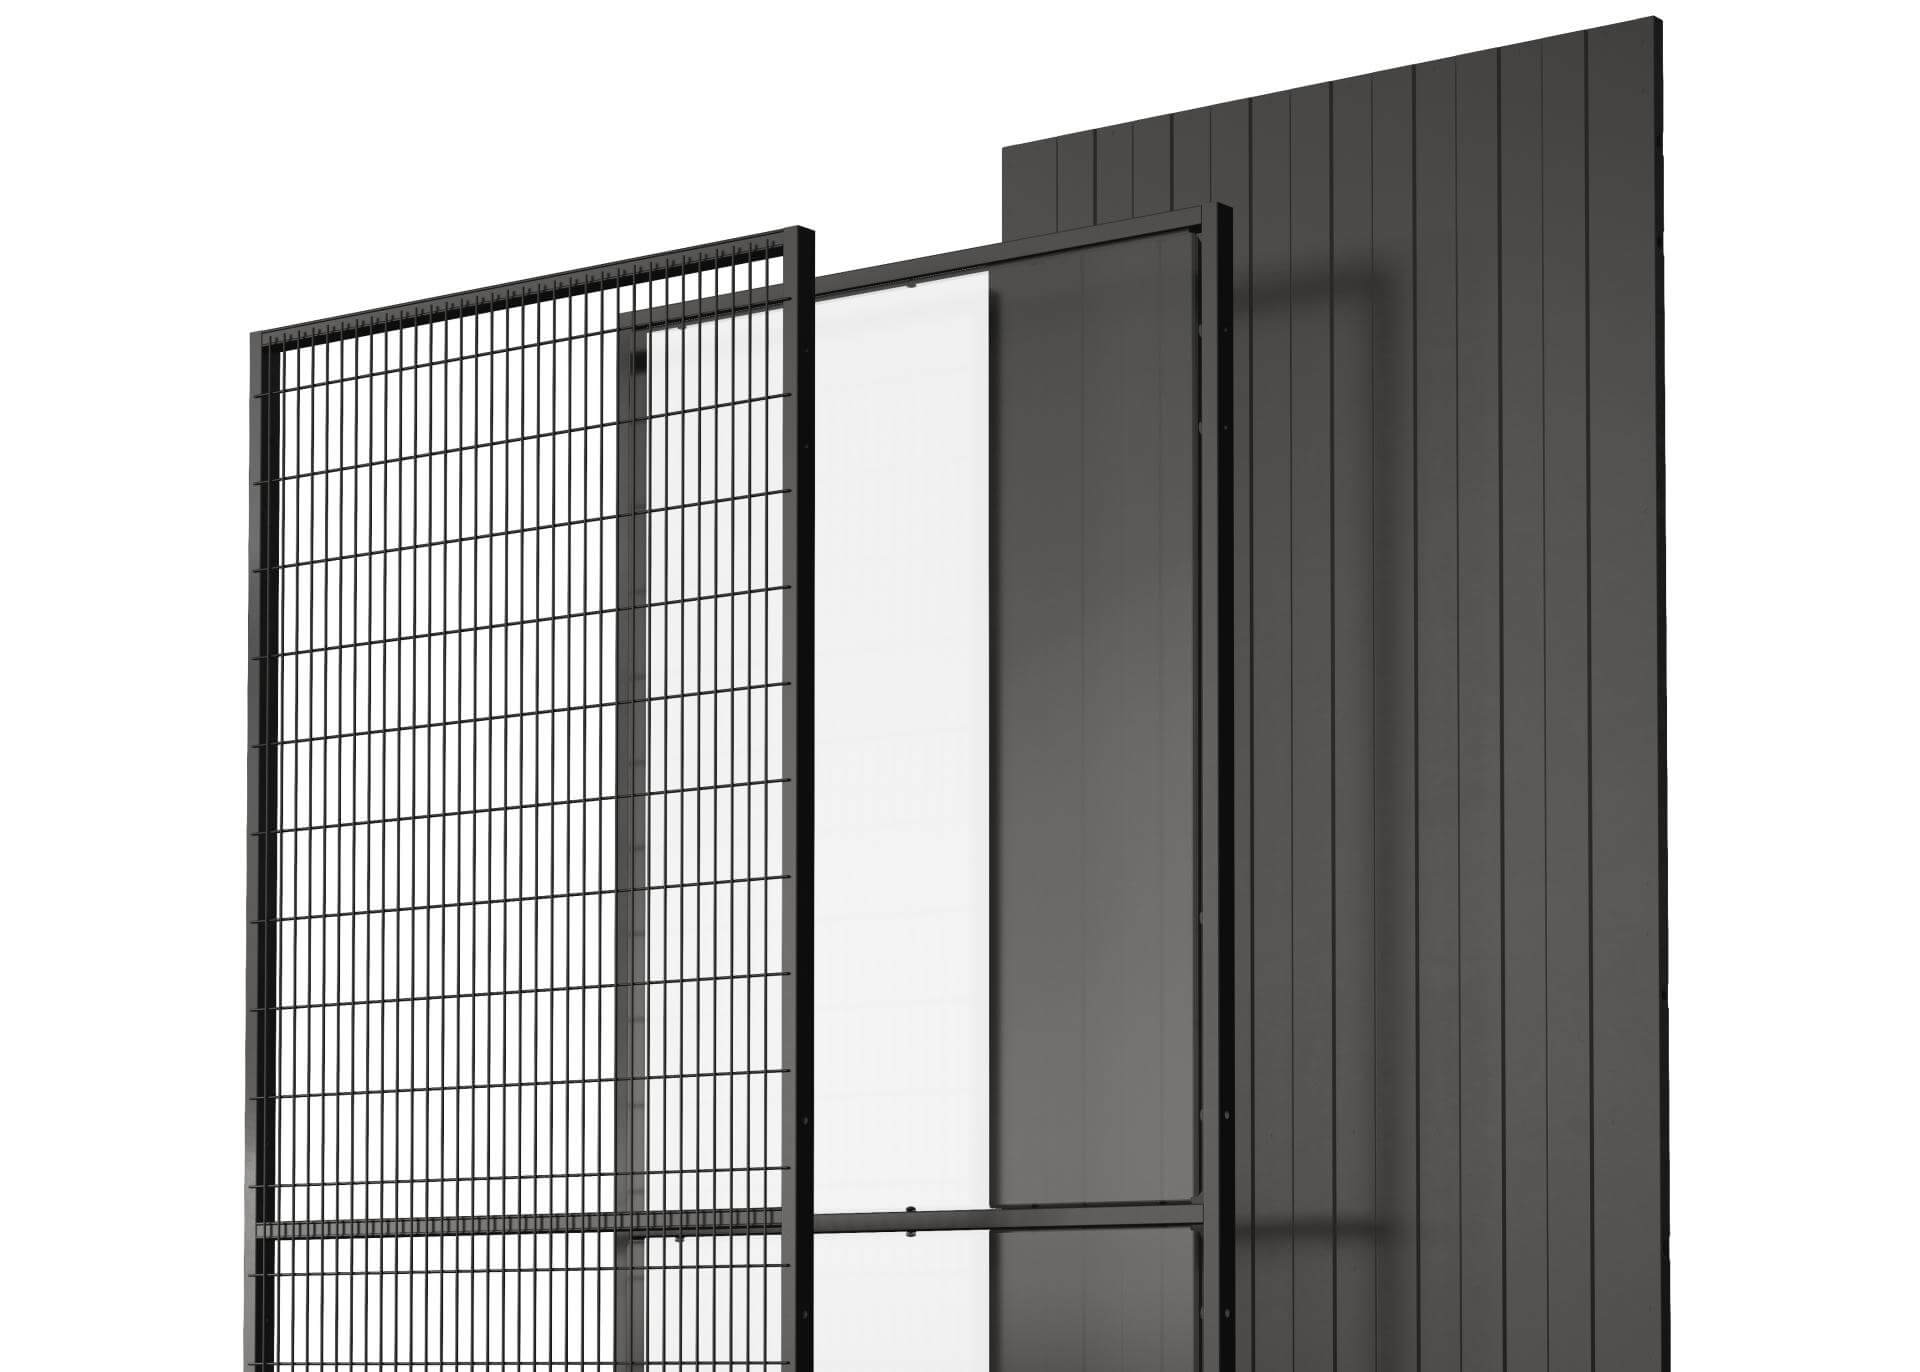 Panels in mesh, steel and polycarbonate (PC).